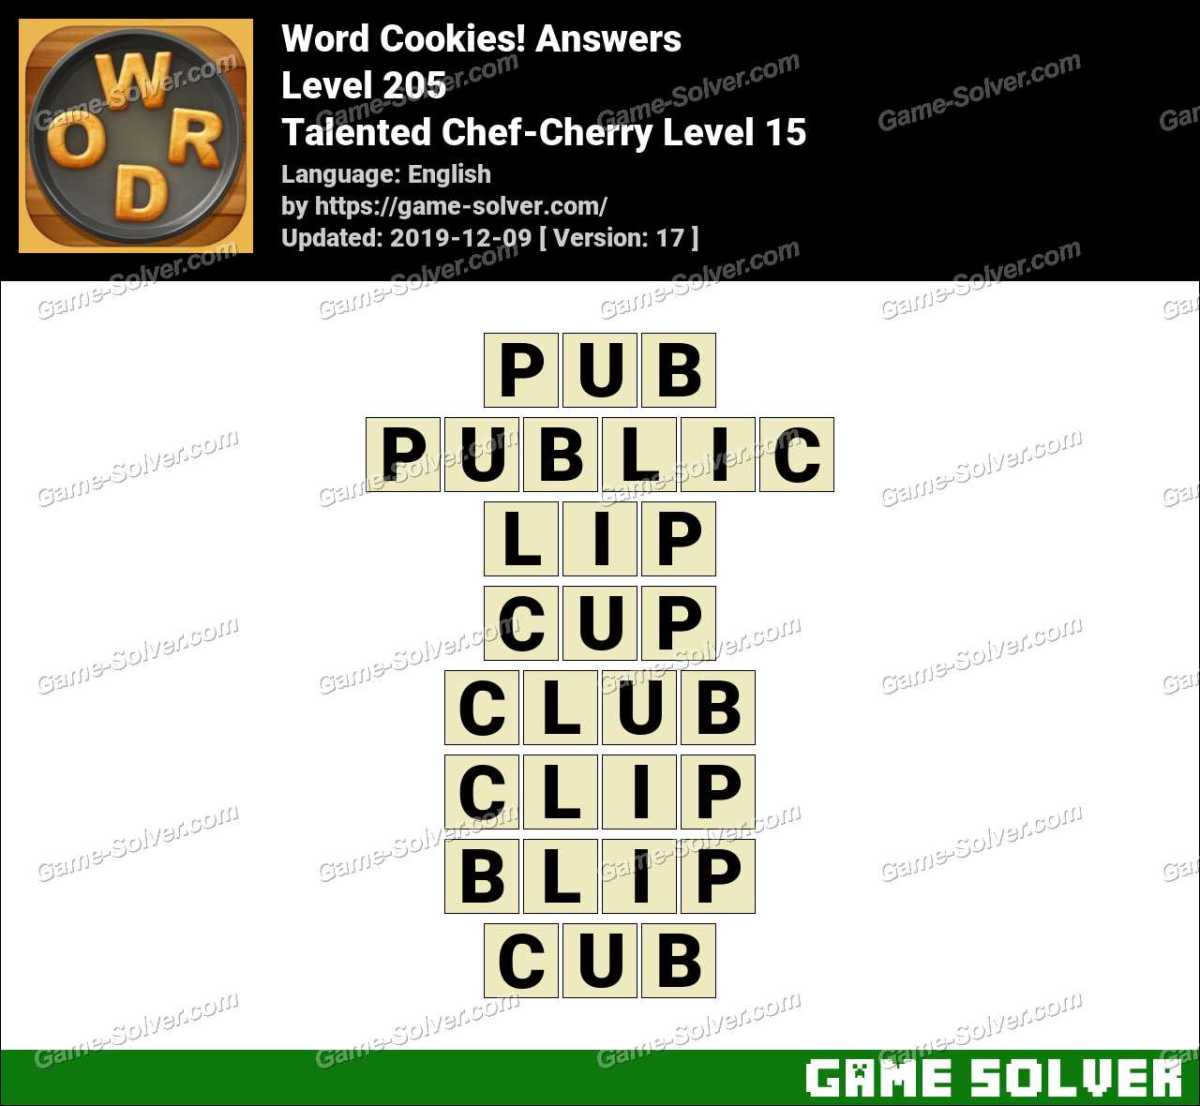 Word Cookies Talented Chef-Cherry Level 15 Answers